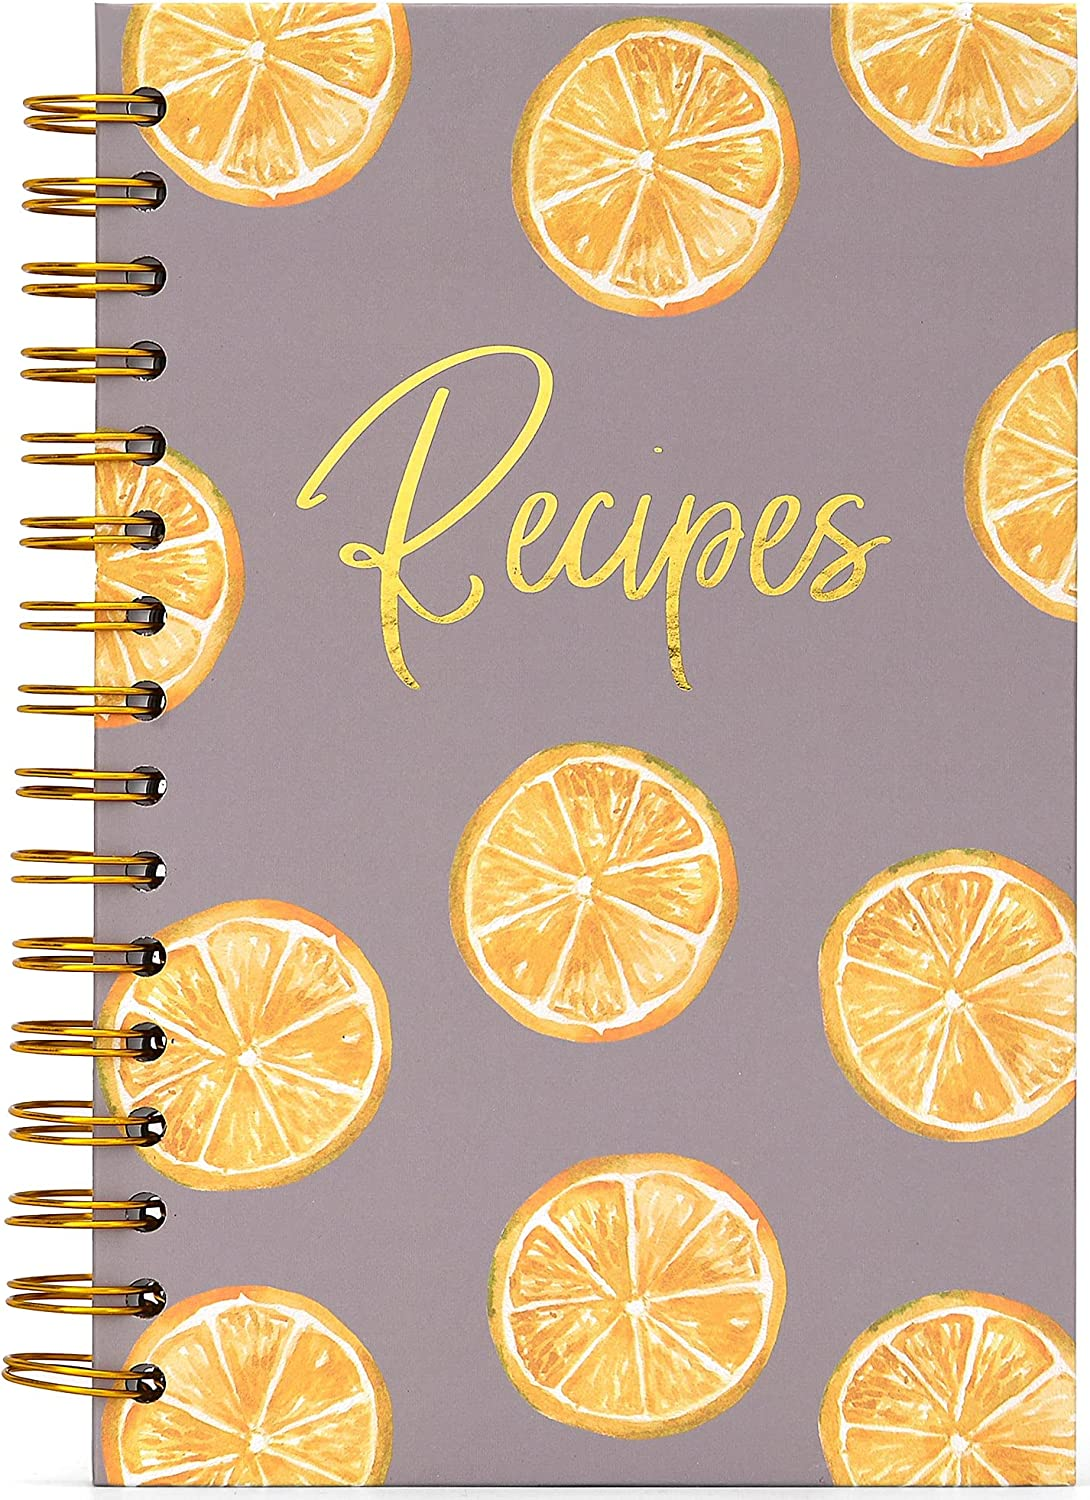 Blank Recipe Book To Write In Your Own Recipes, Recipe Notebook Hardcover Spiral Bound, Recipe Organizer, Cooking Recipe Journal, Cook Book Journals Blank Cookbook Fill in, Kitchen Lemon Decor, Make.